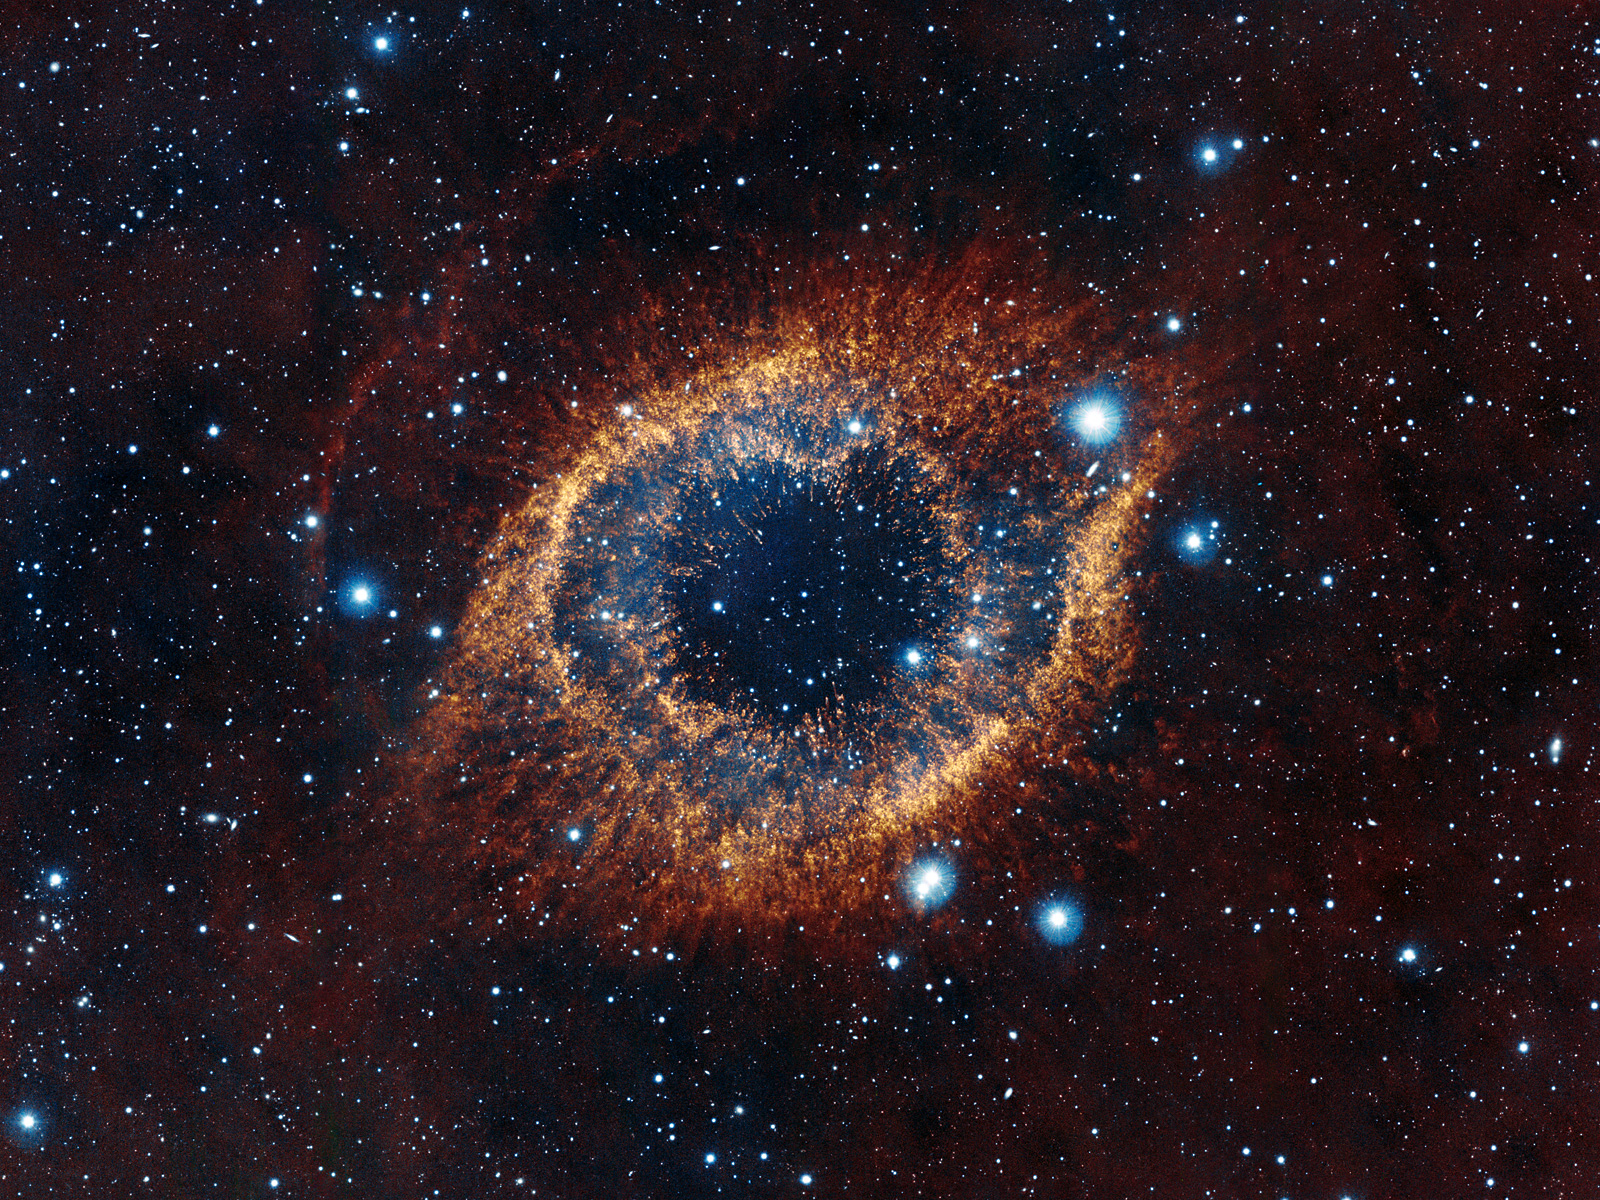 VISTA's look at the Helix Nebula 1600